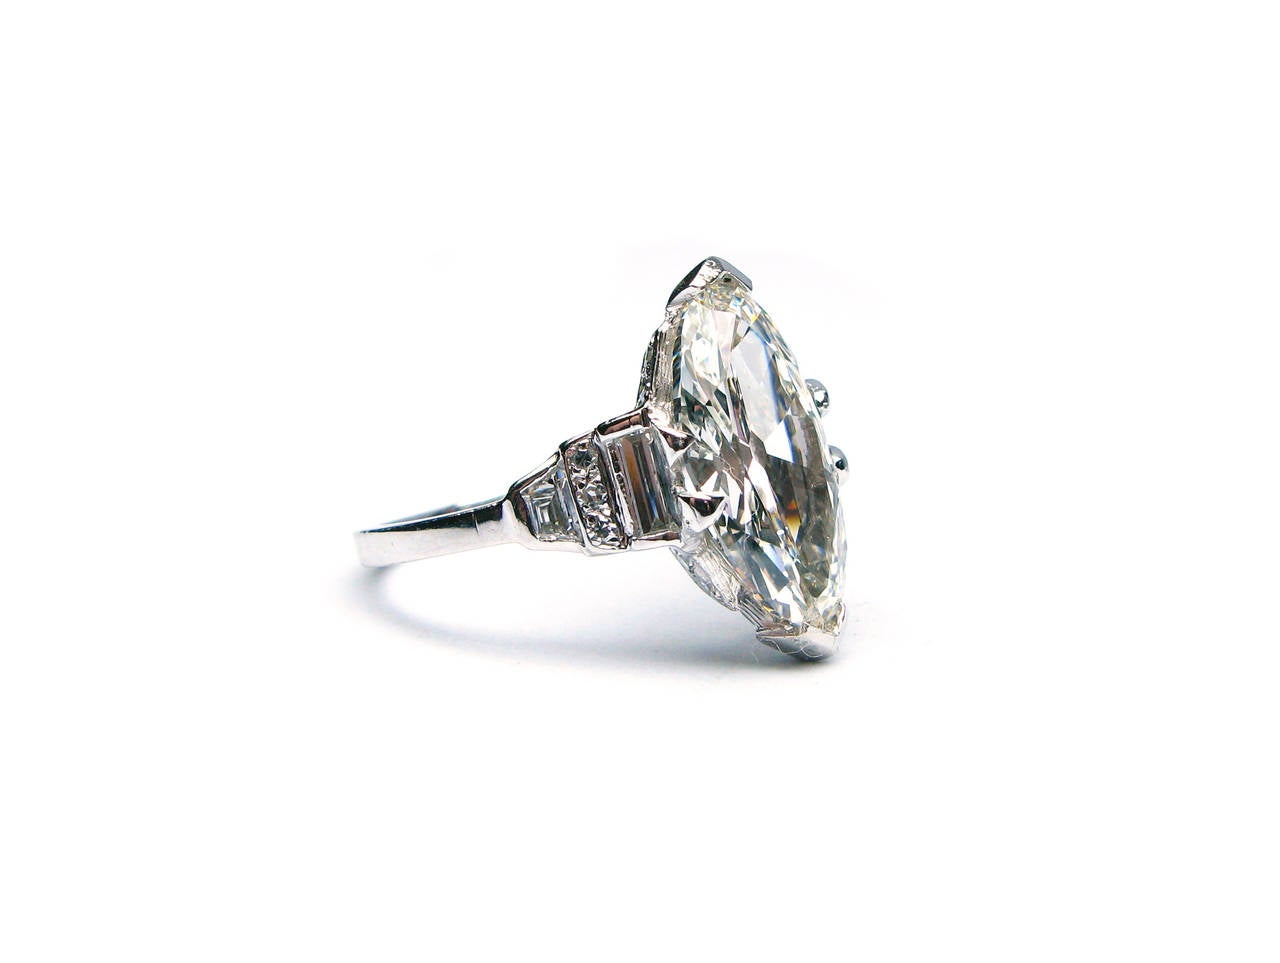 Art Deco GIA Cert Oval Diamond Platinum Ring In Excellent Condition For Sale In New York, NY